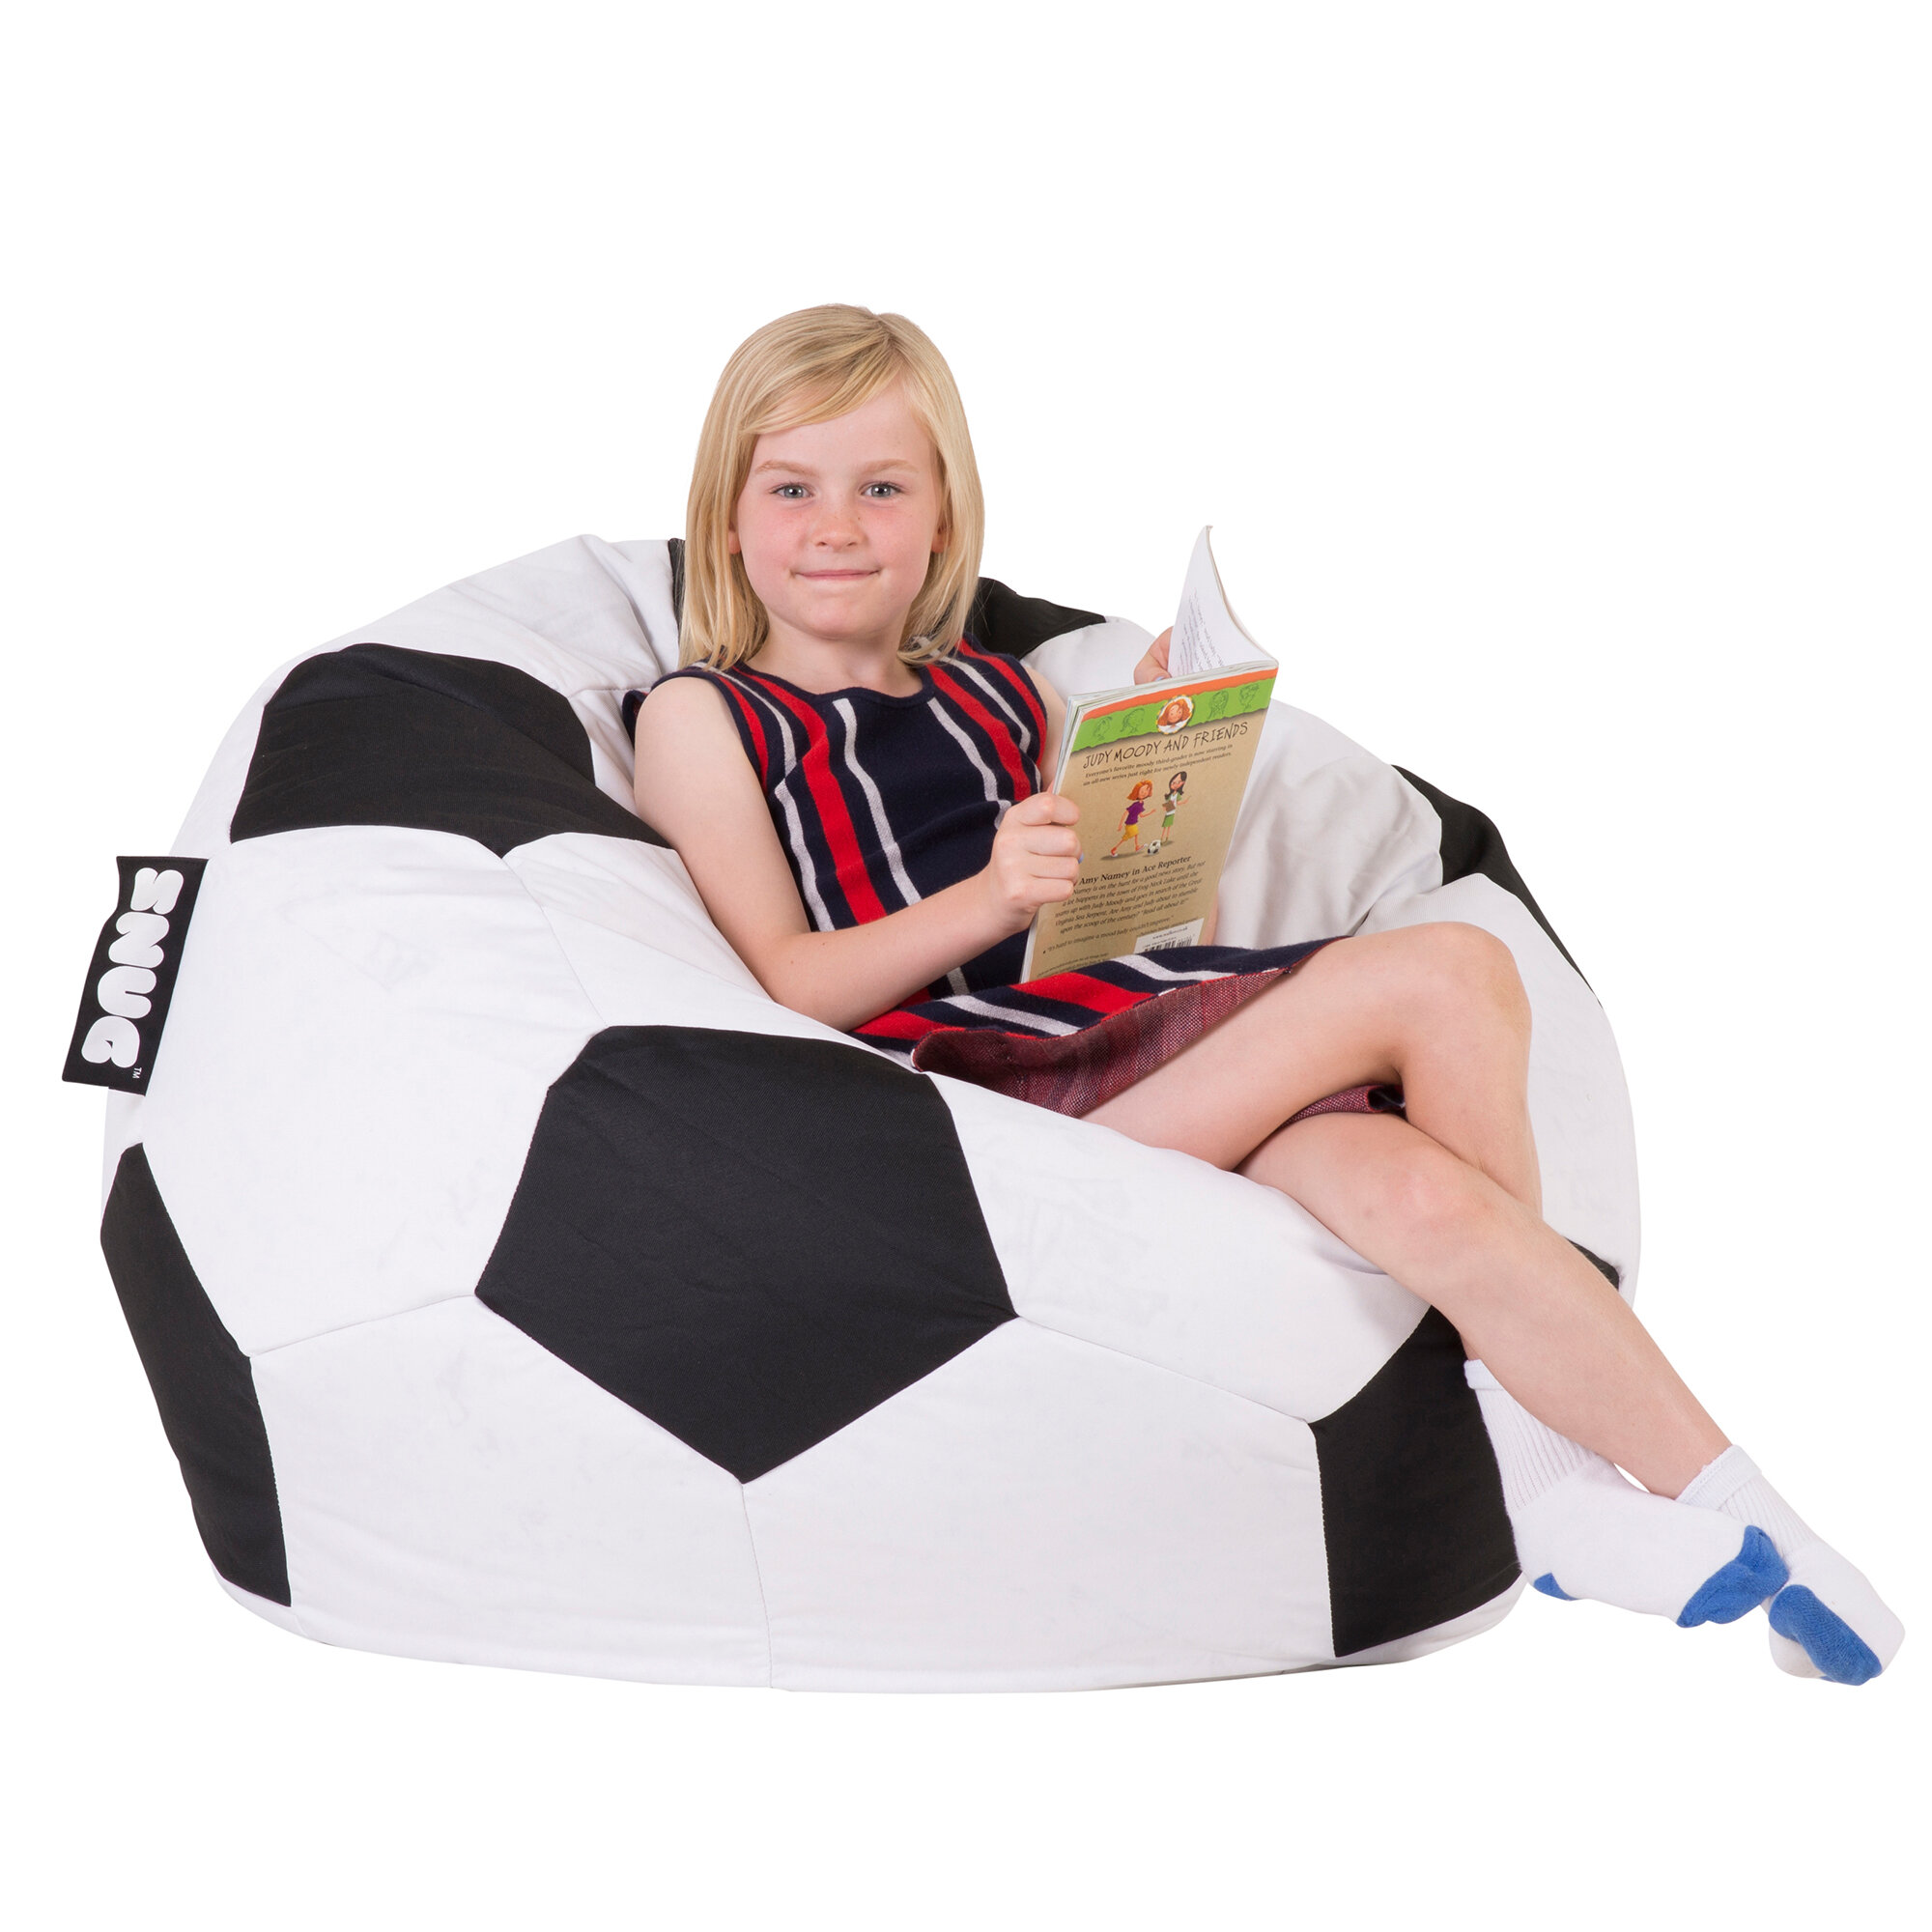 Ebern Designs Bean Bag Chair Wayfair